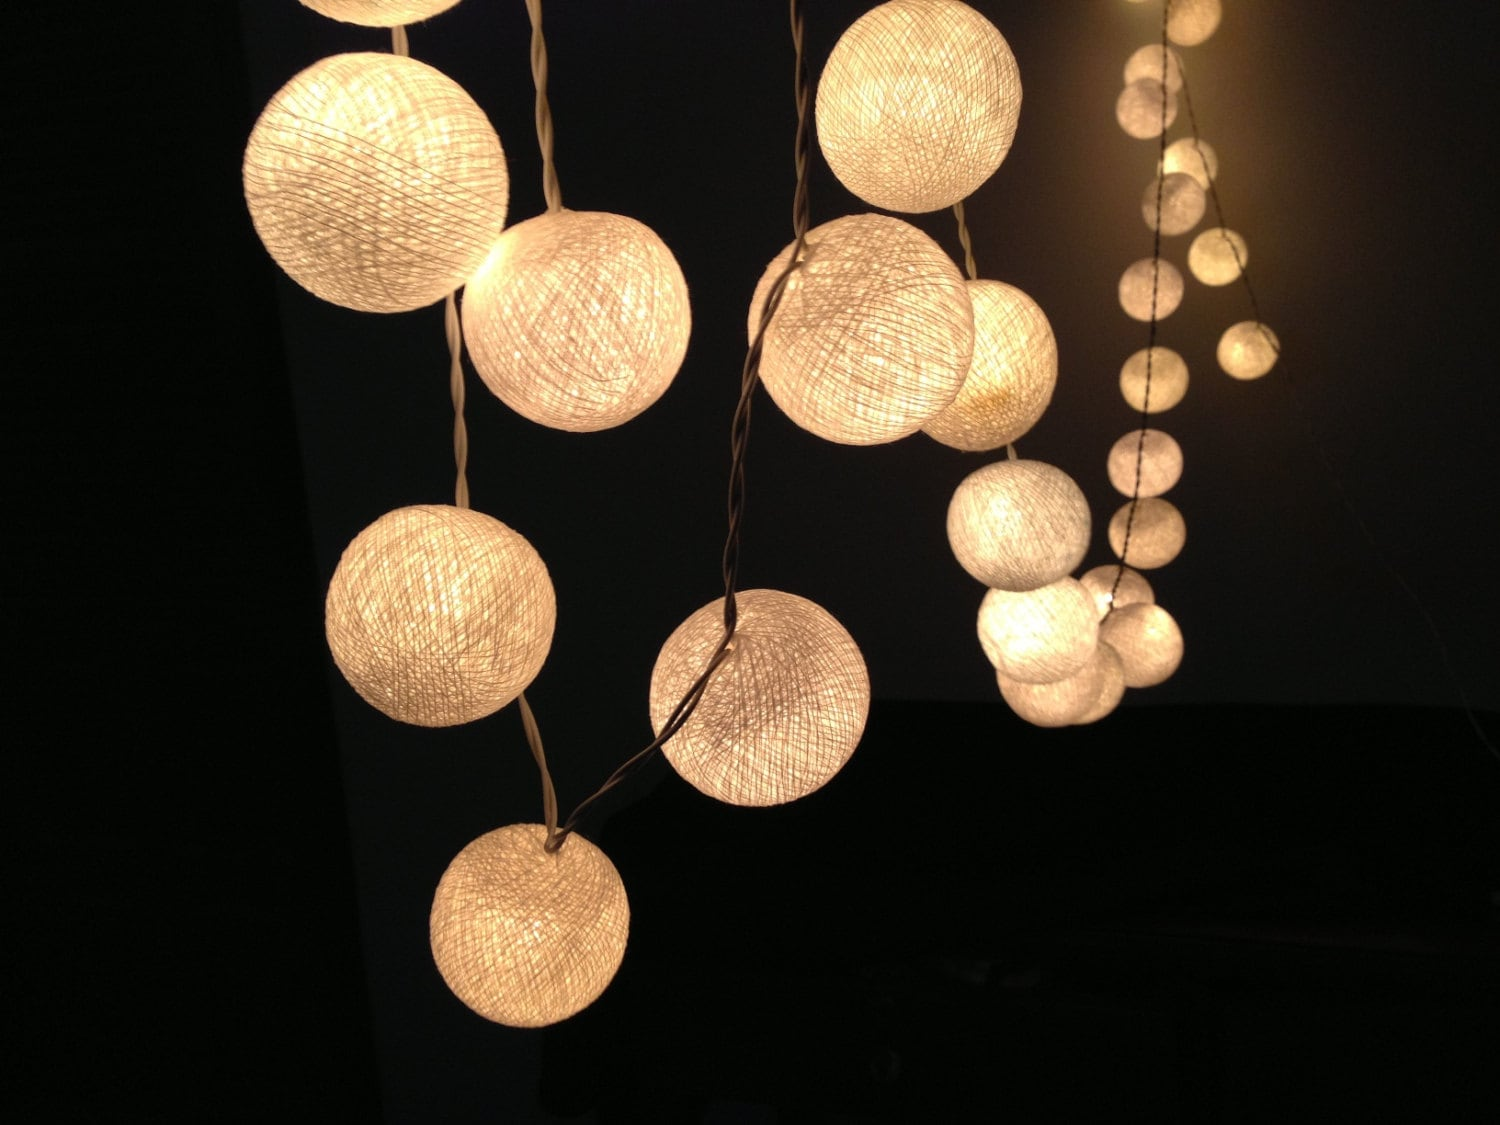 35 bulbs white cotton ball string lights for. Black Bedroom Furniture Sets. Home Design Ideas